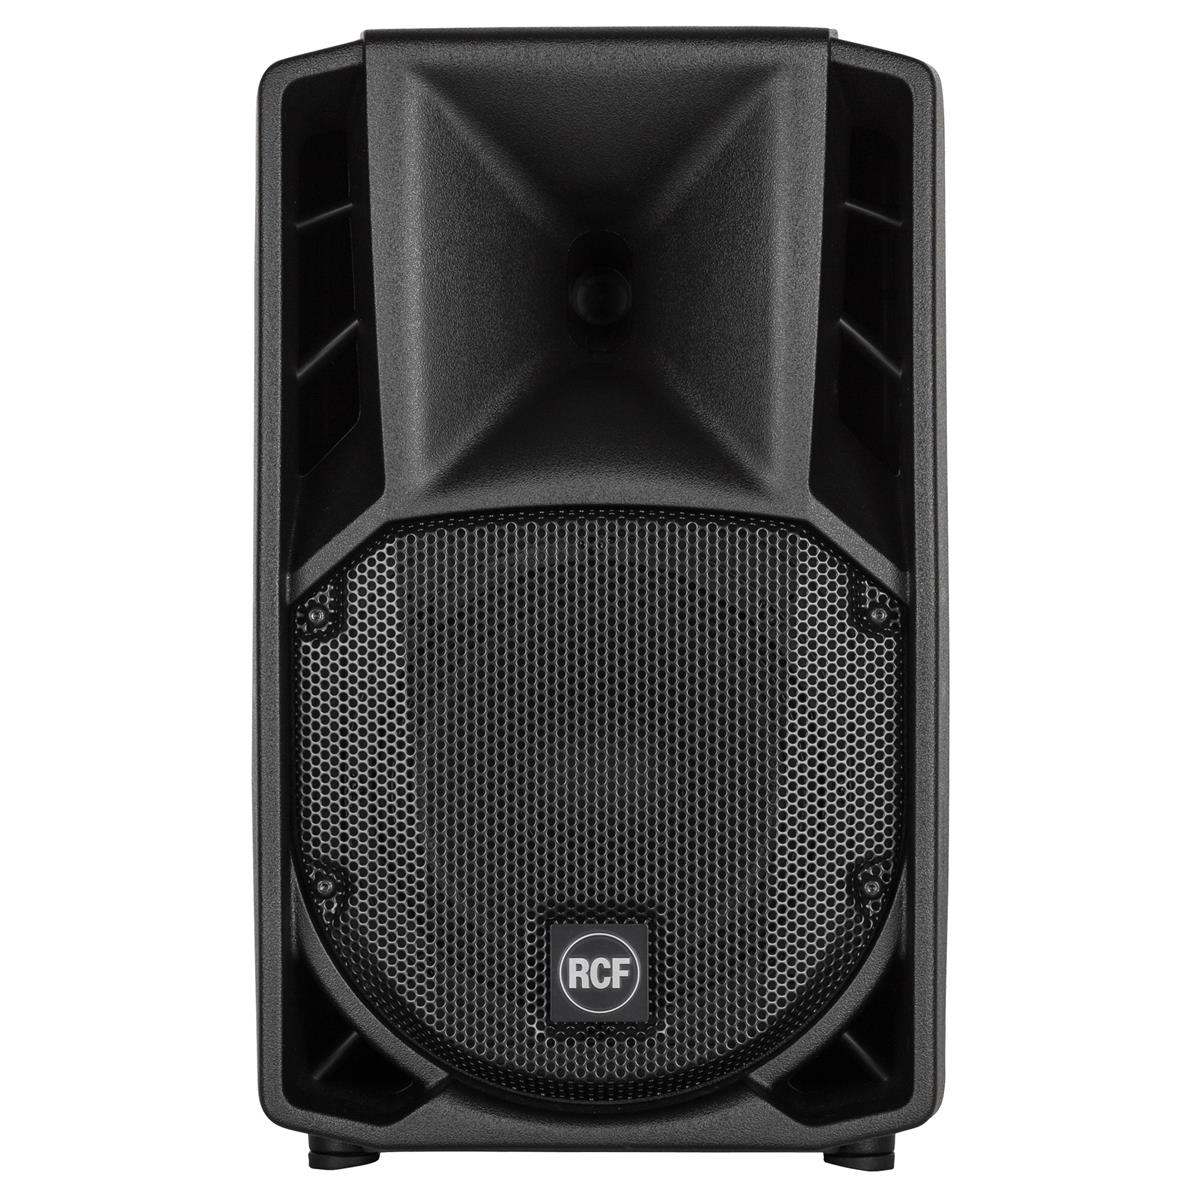 RCF ART 708-A MK4 Digital active speaker system 8in + 1in, 4